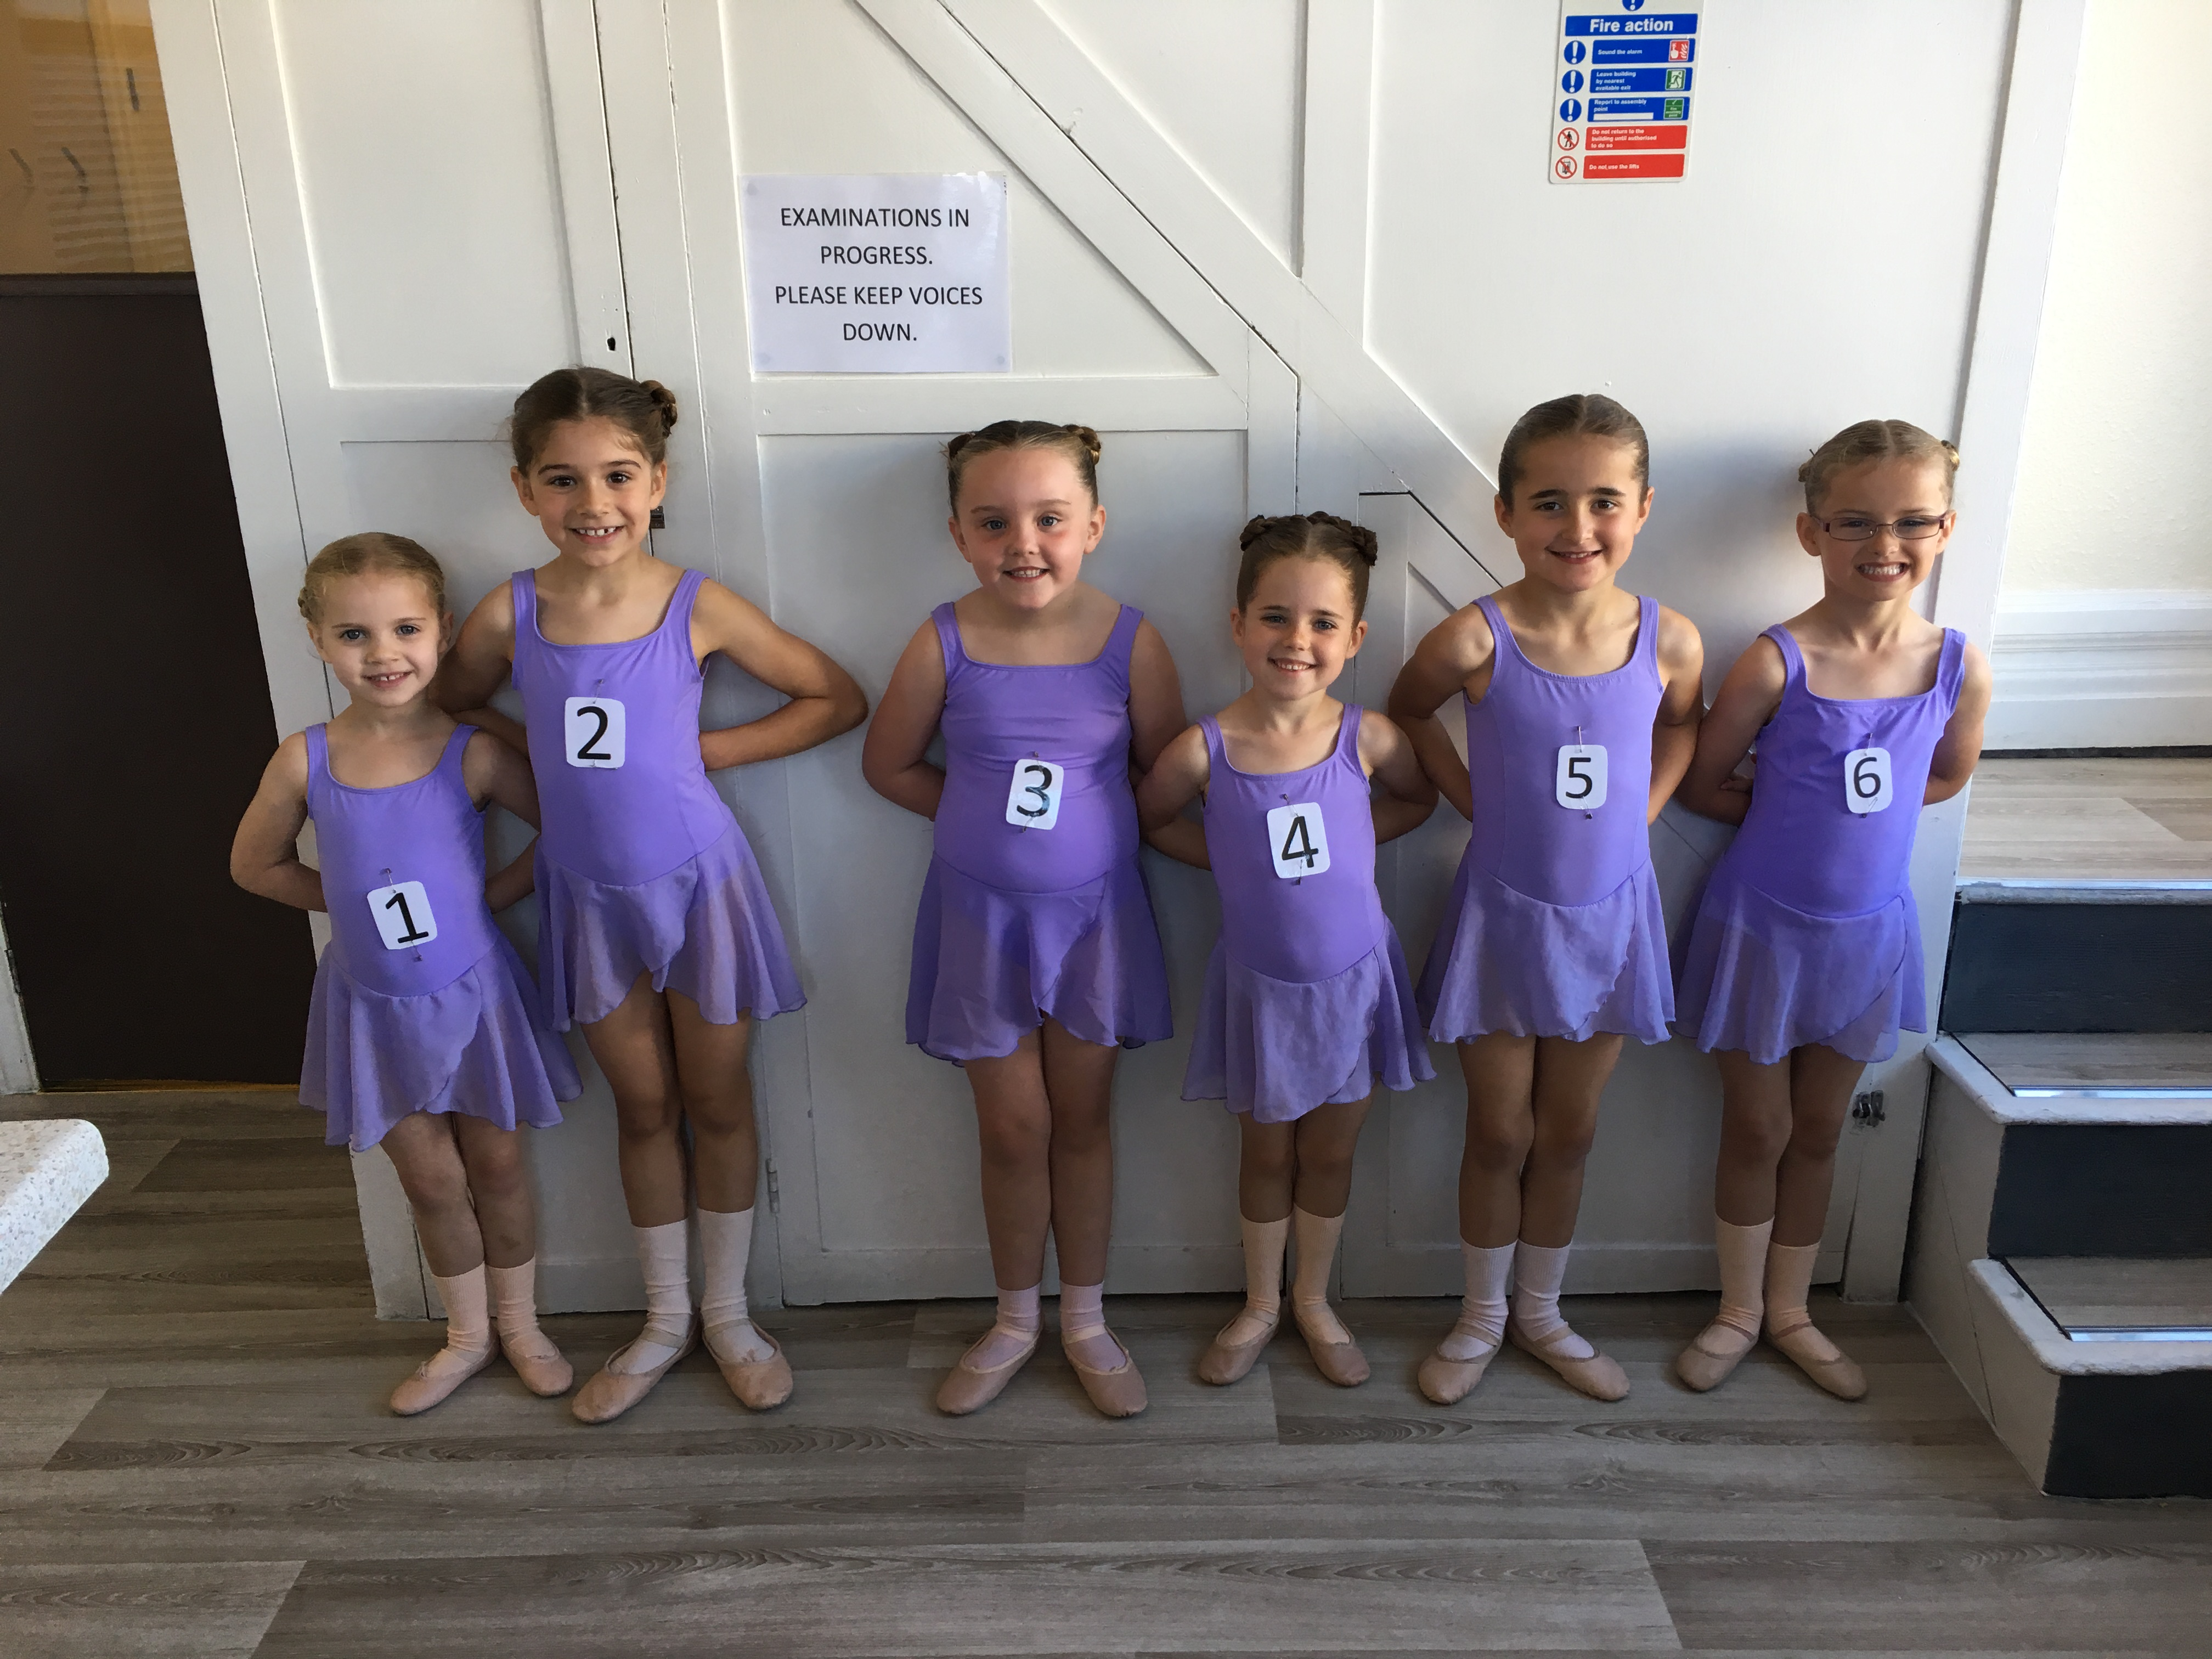 When will my child take an exam? | JC Dance